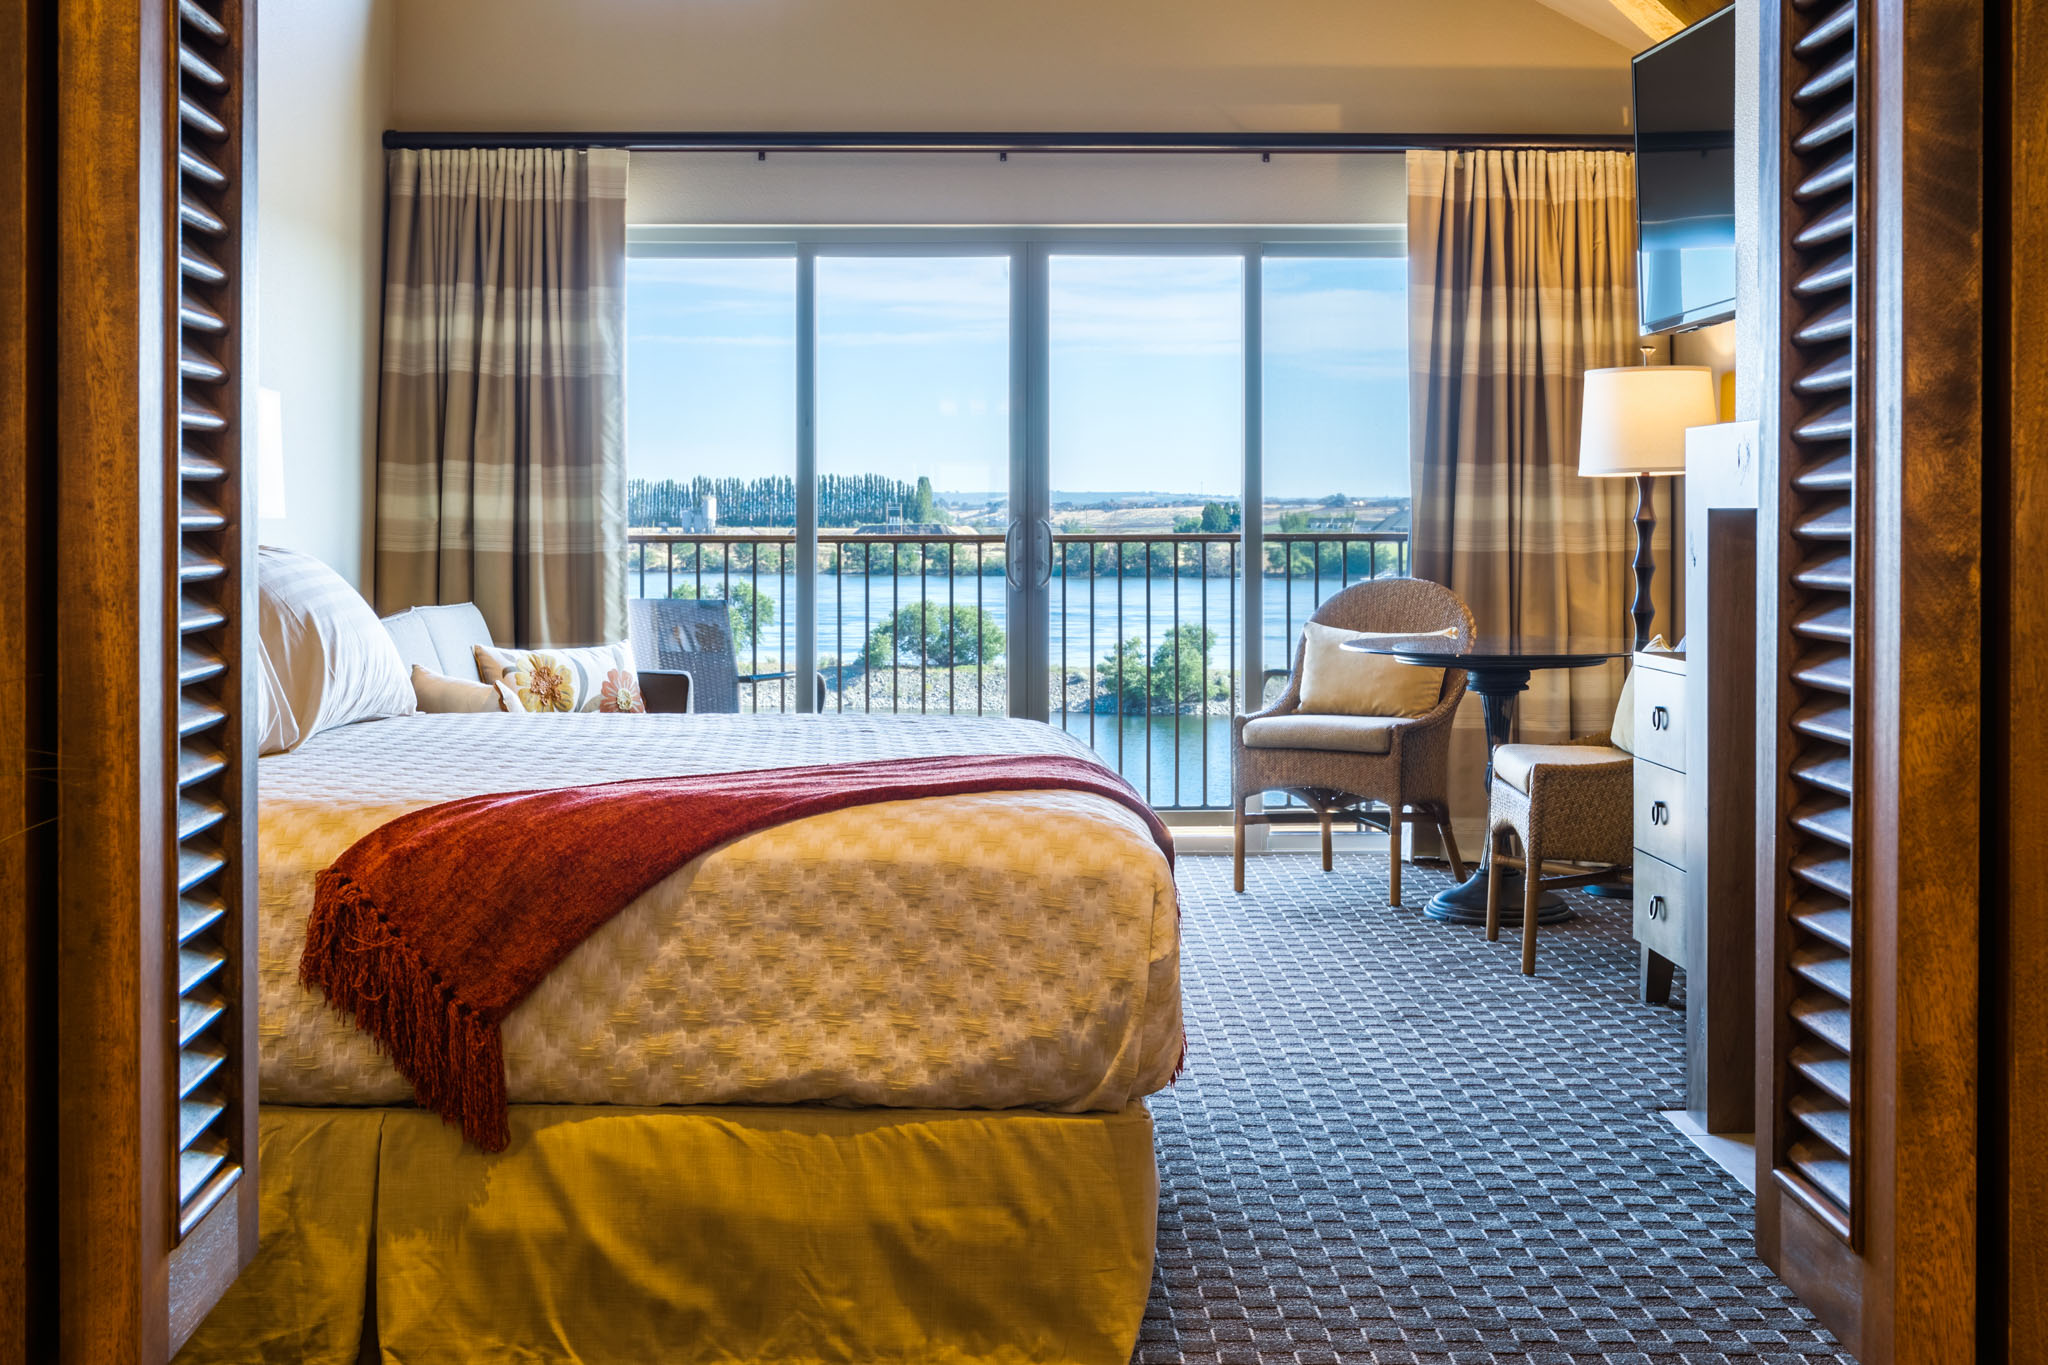 King riverfront room in Washington